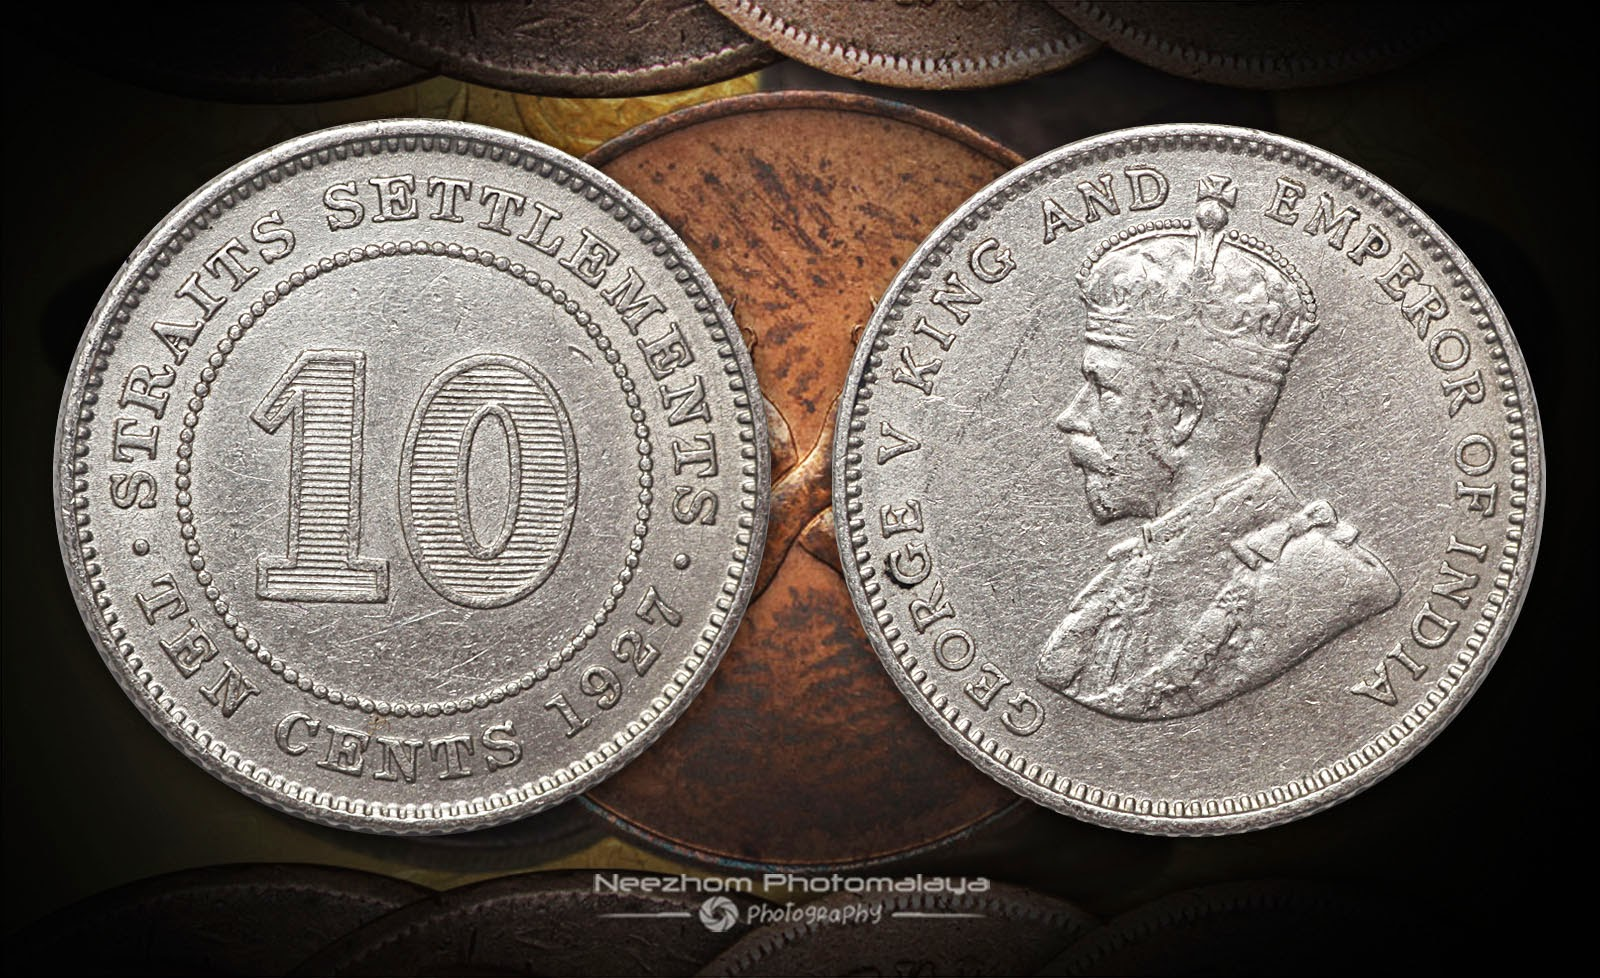 Straits Settlements 10 Cents 1927 silver coin